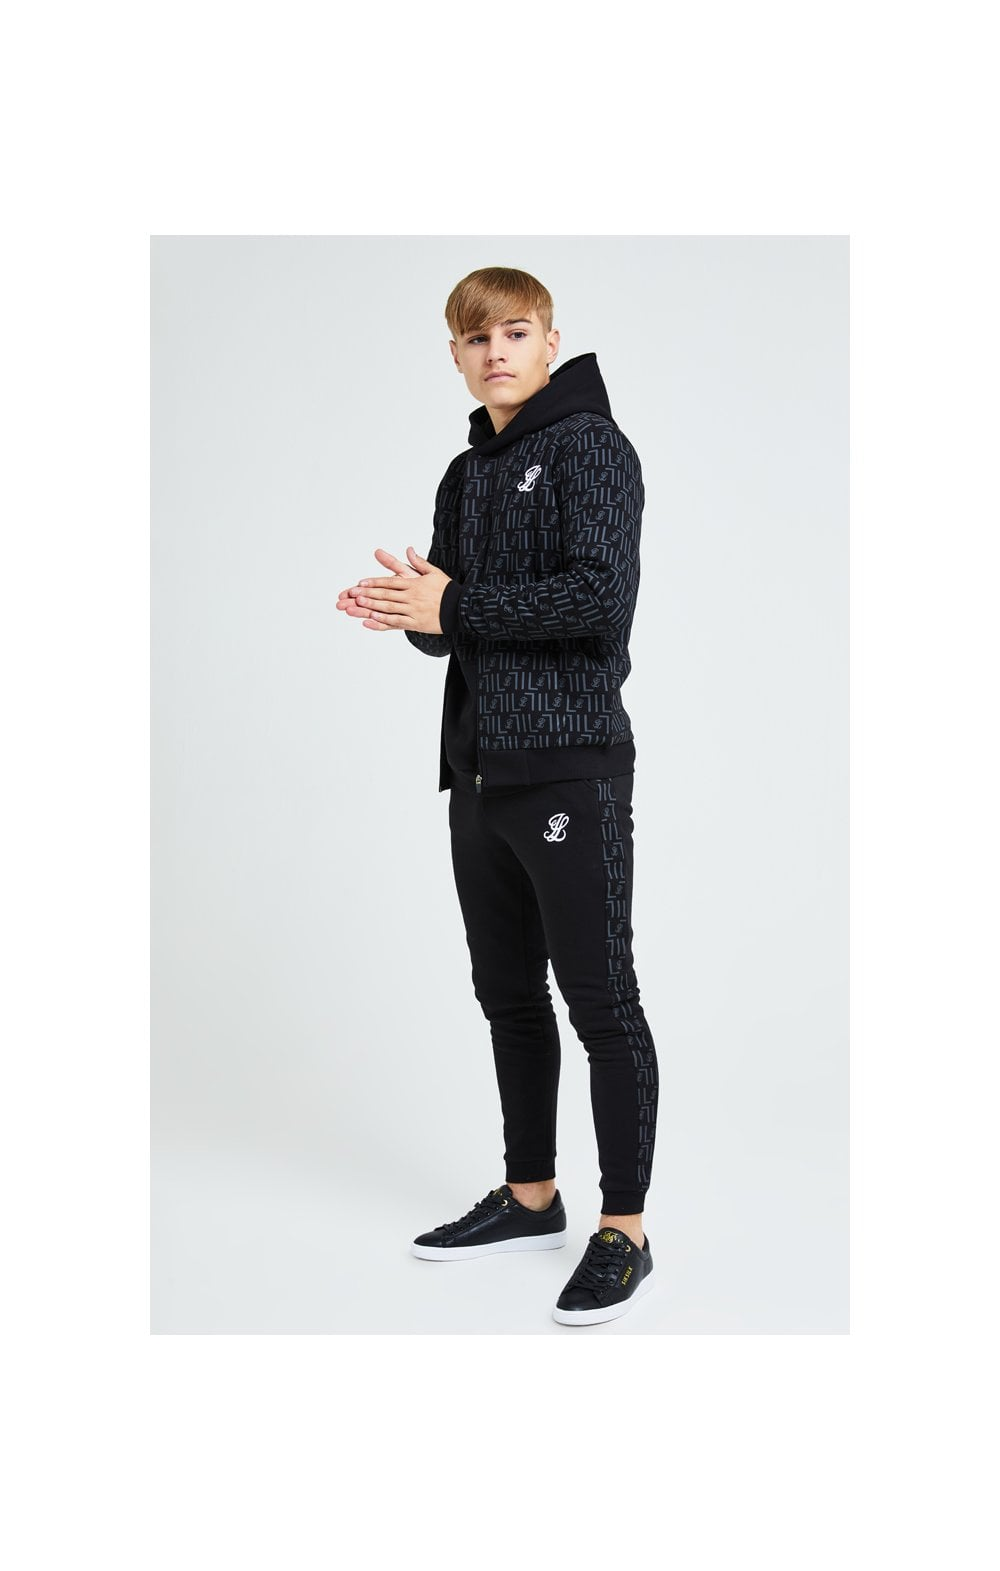 Illusive London Elite Joggers – Black (3)